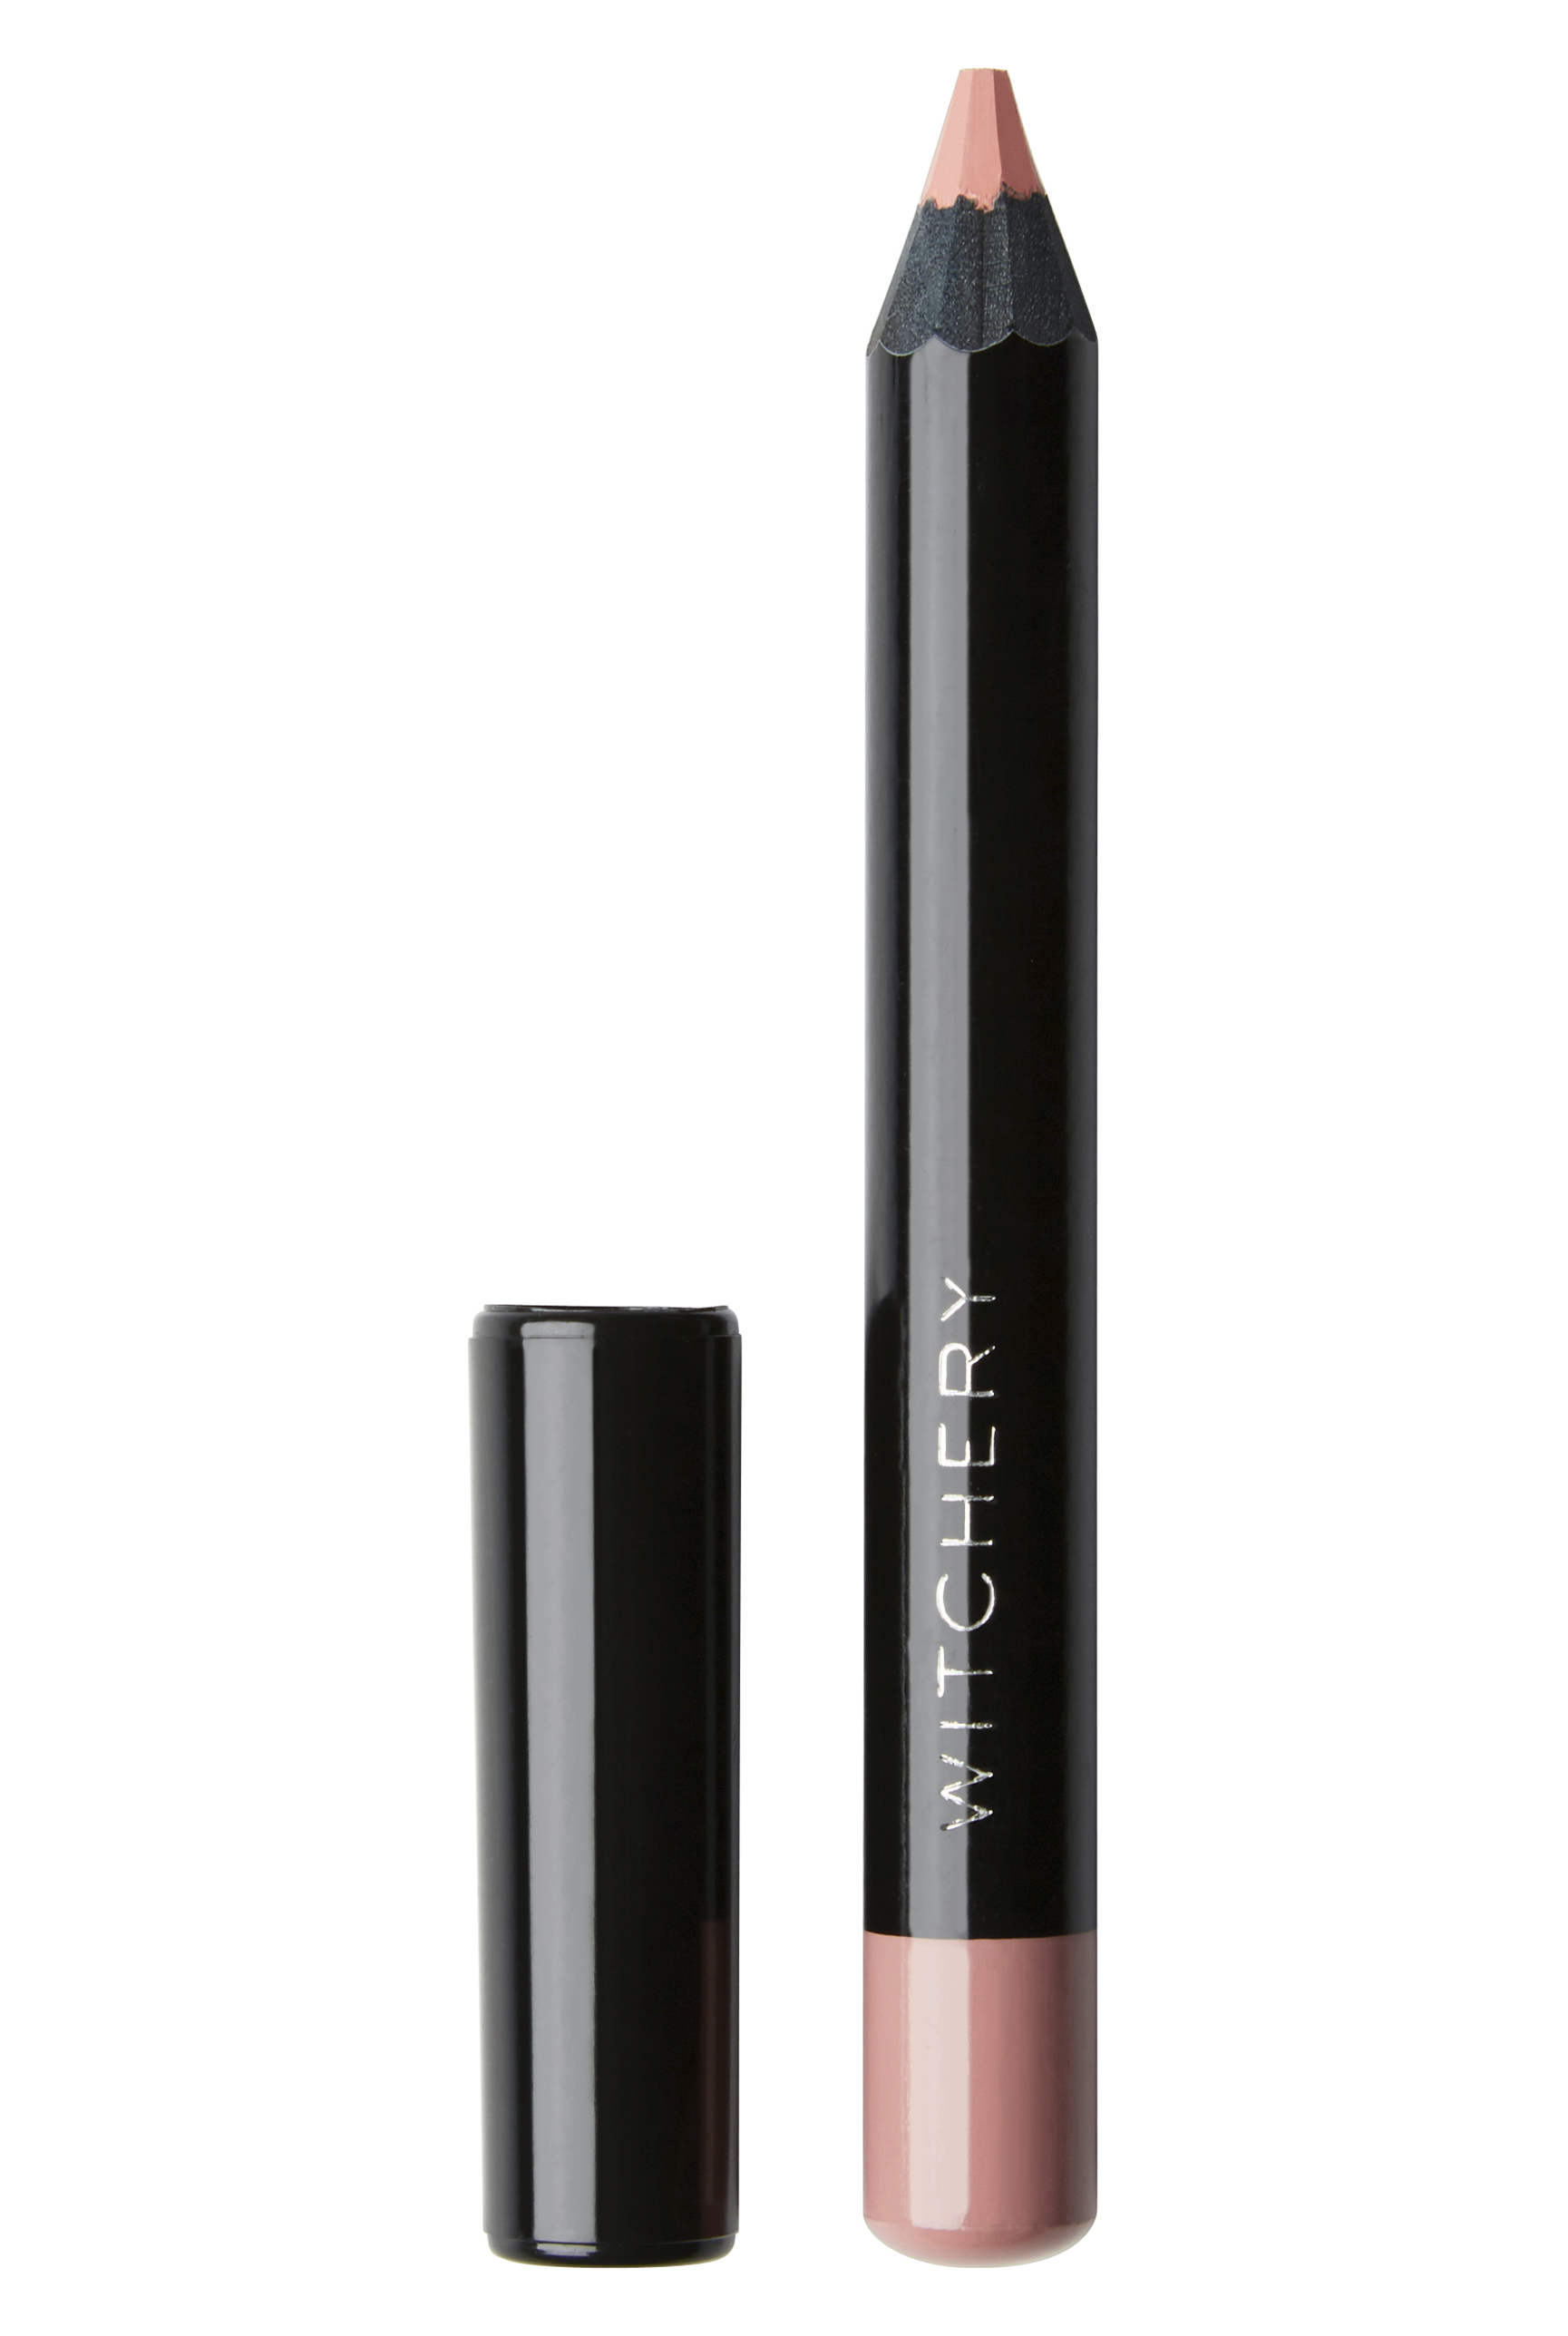 60172147_witchery-beauty-lip-creme-pencil-in-nougat-rrp9-90